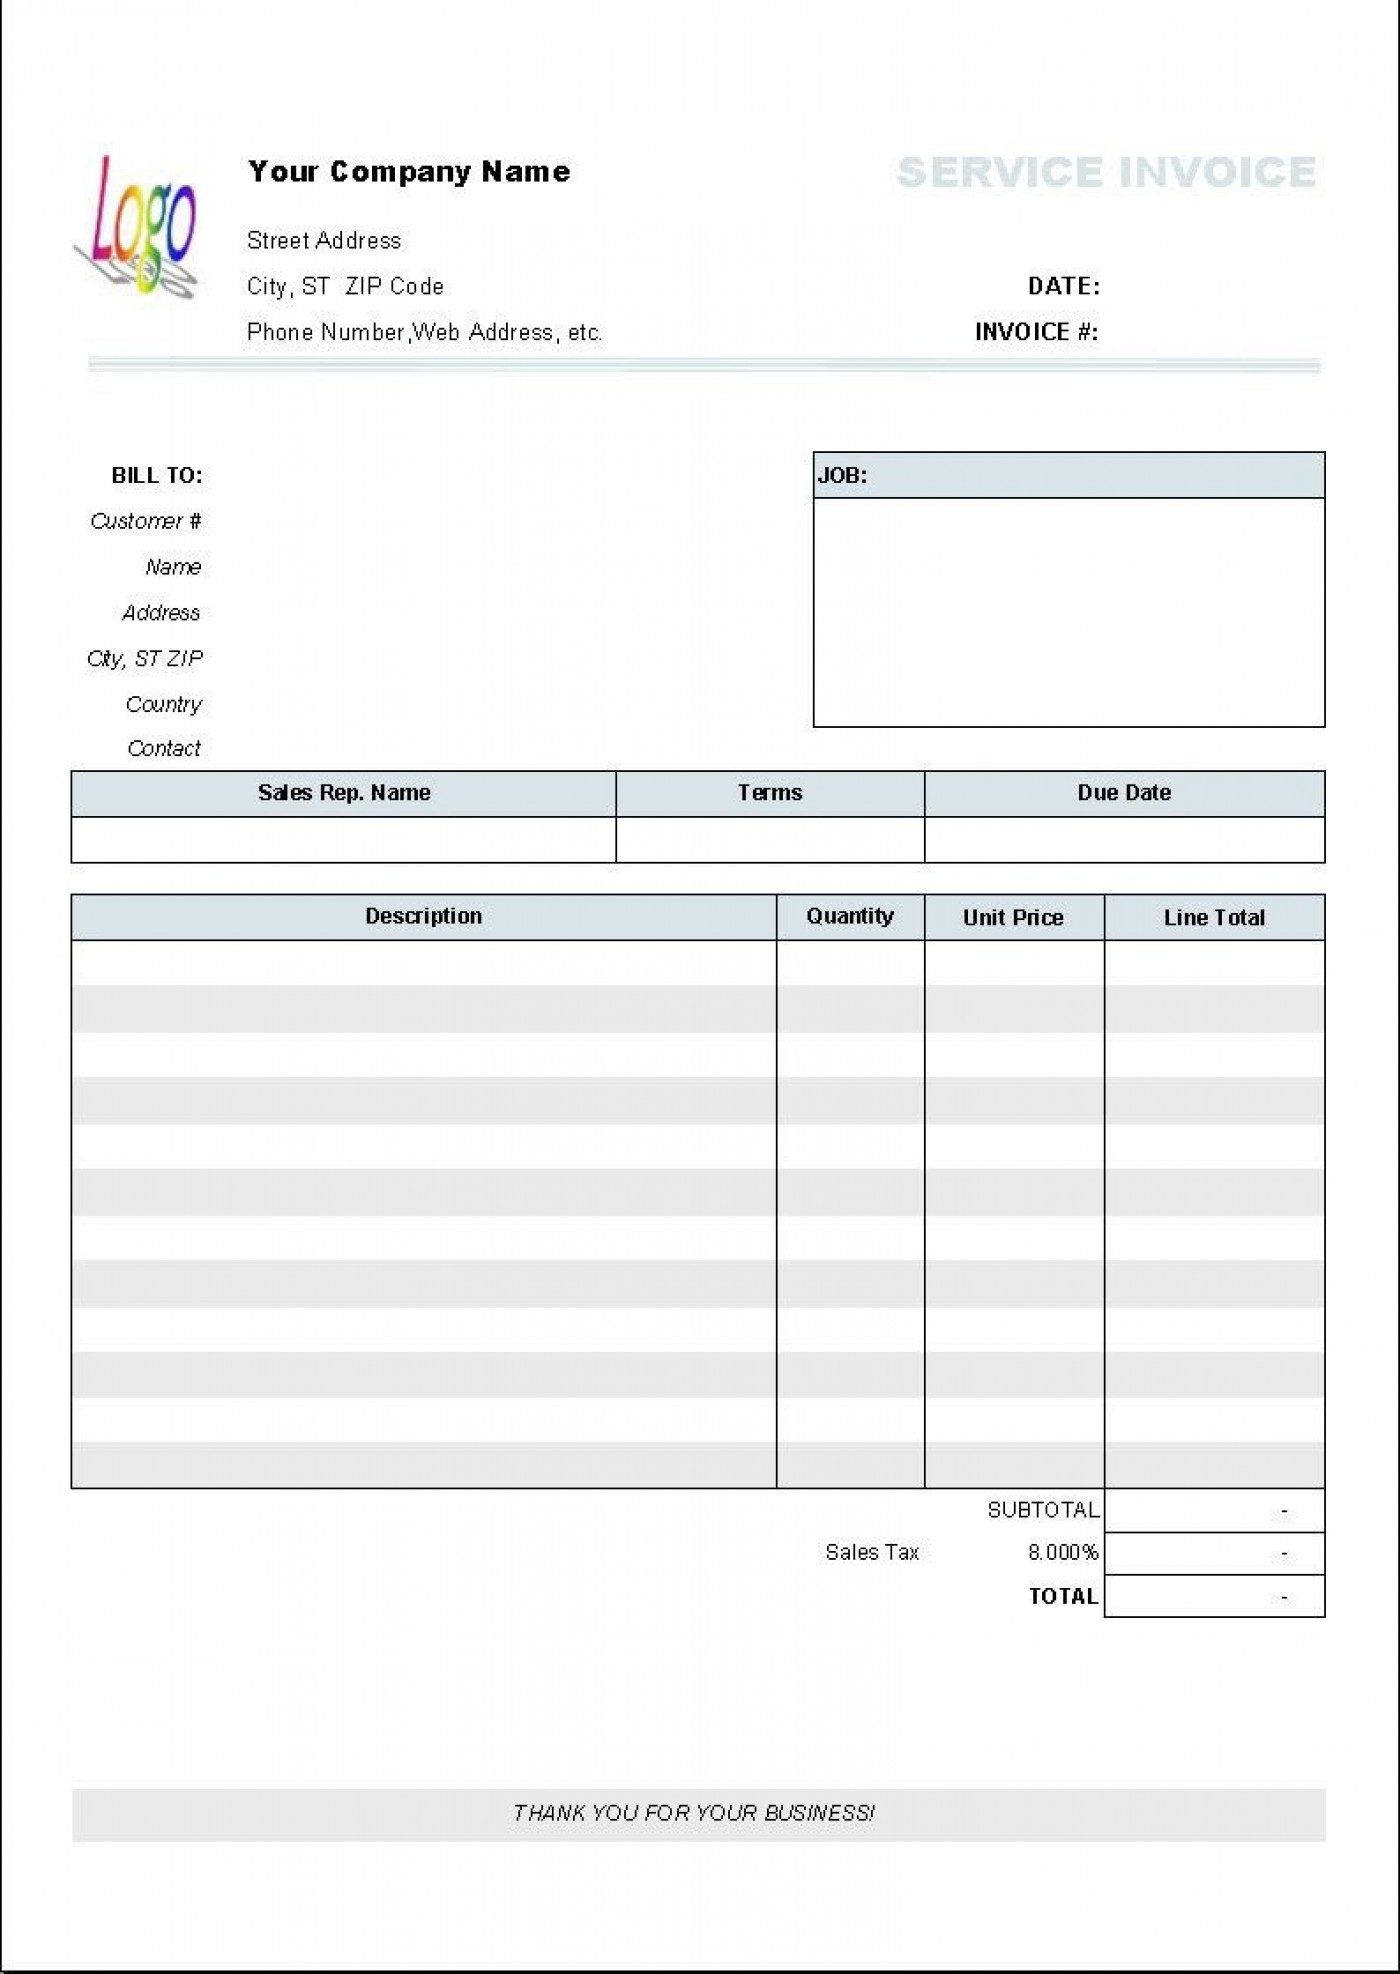 001 Beautiful Service Invoice Template Free Image  Rendered Word Auto Download1400